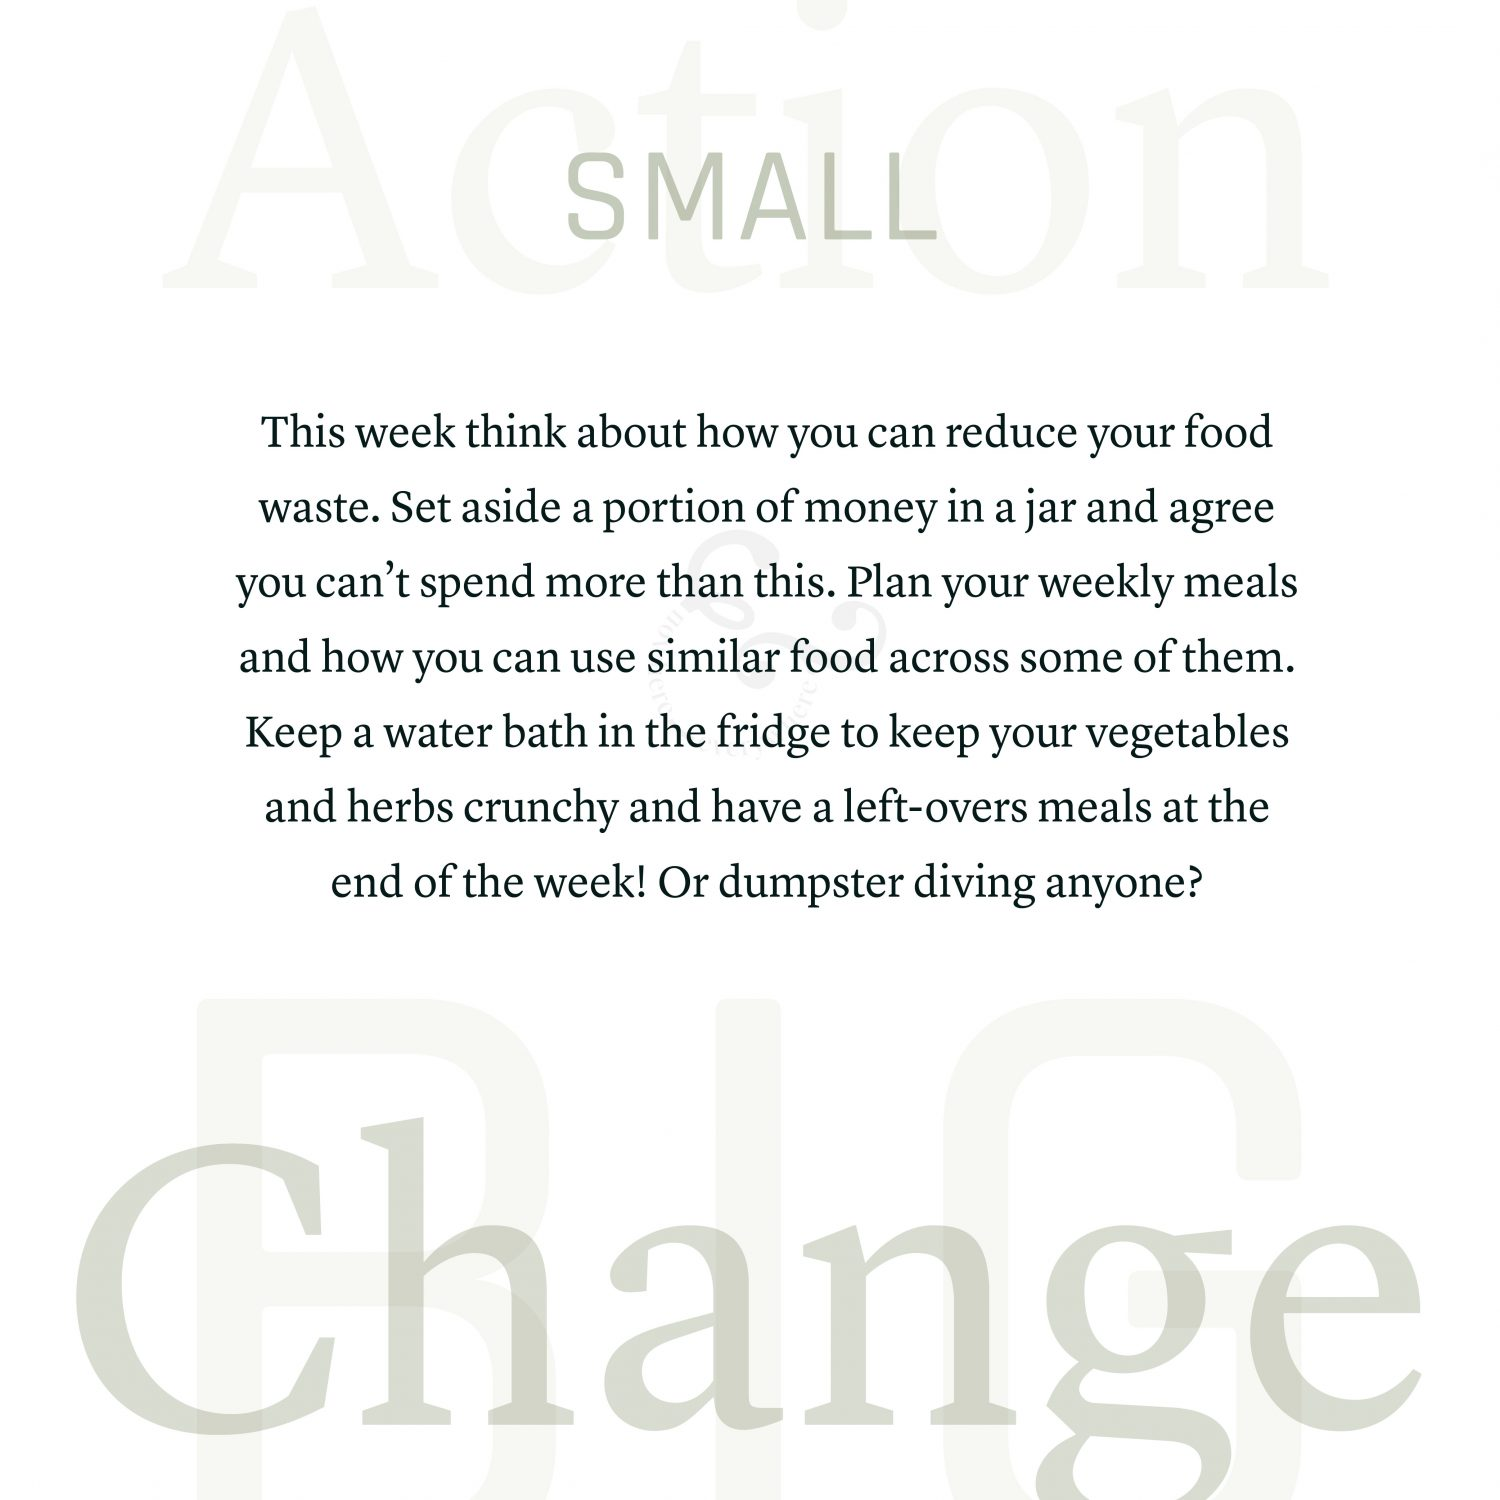 Take Action Environmental Activism Small Steps Vegan Climate Change Food Banks Growing Worm Garden Nowhere & Everywhere